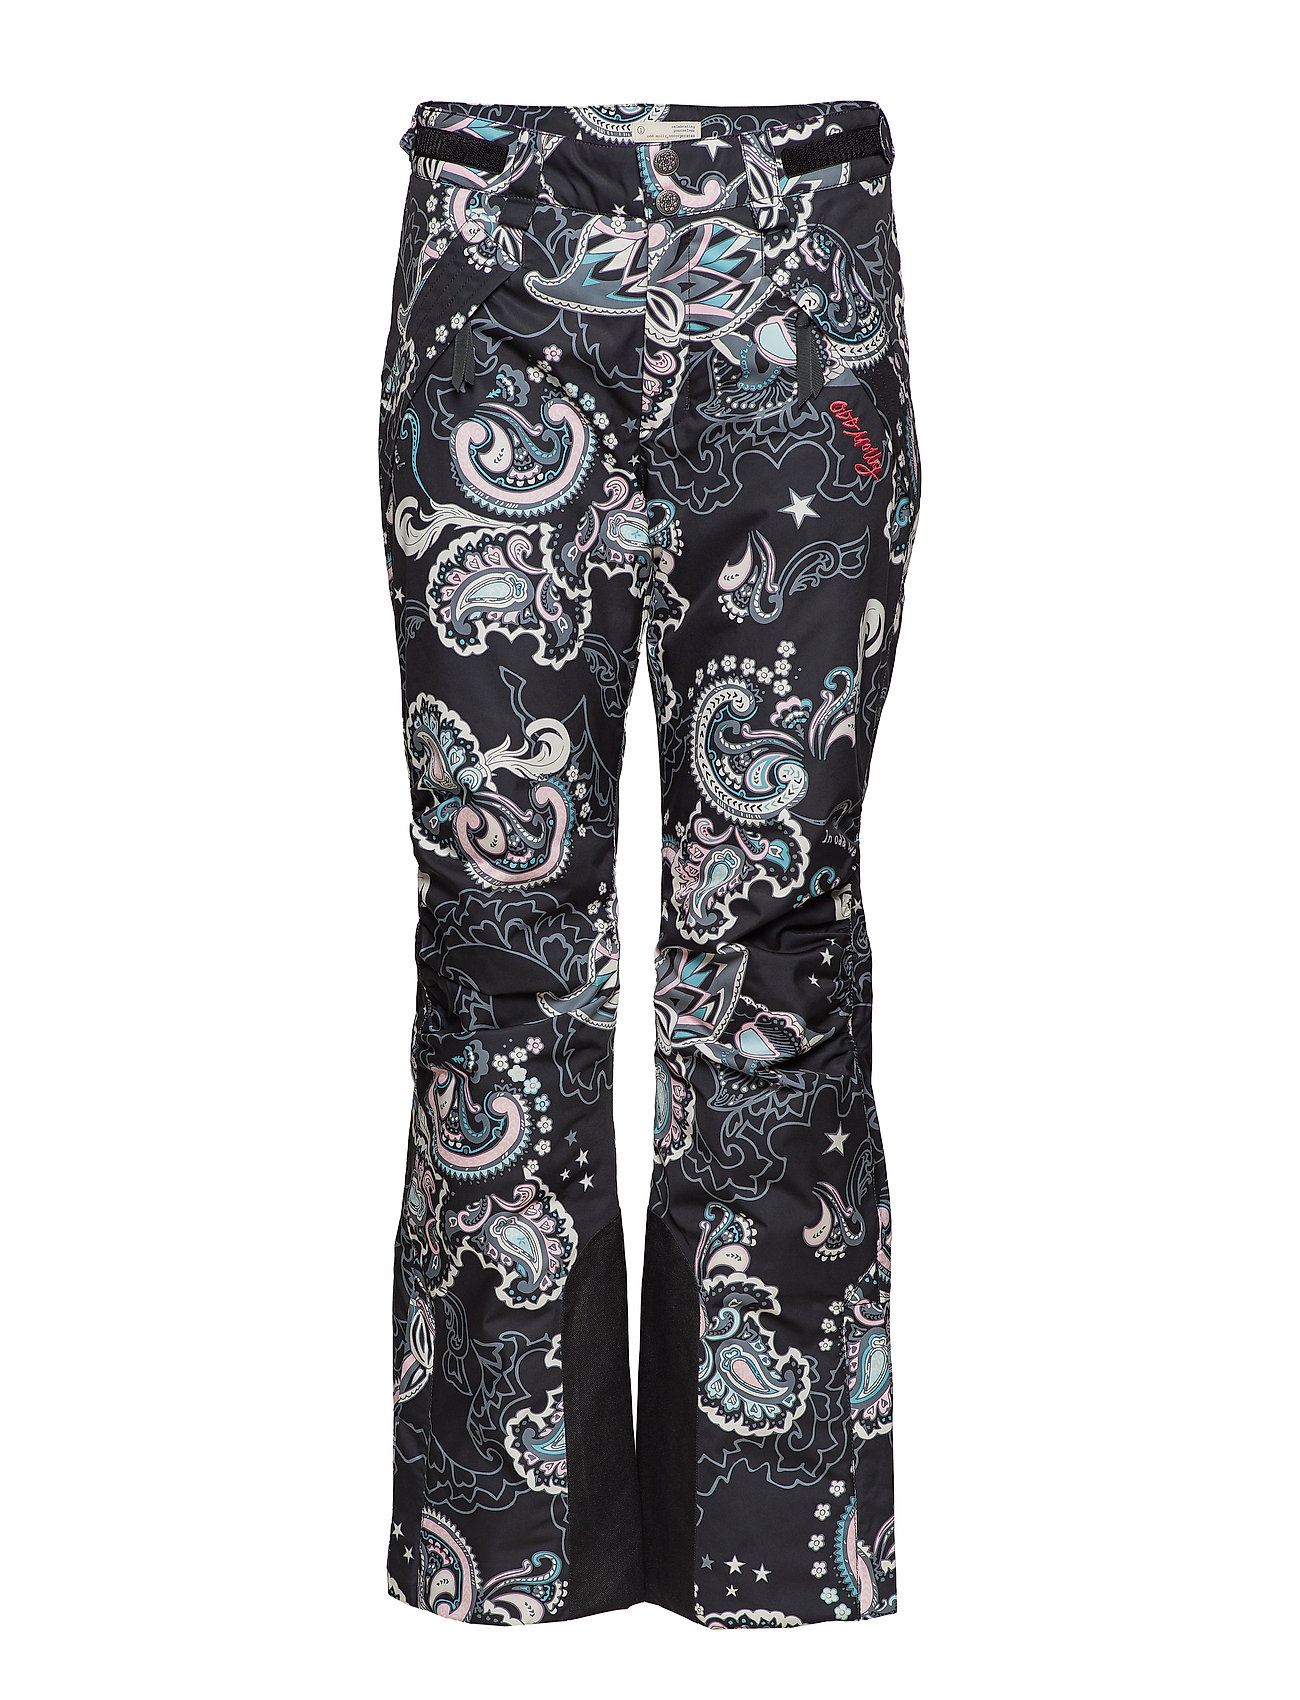 ODD MOLLY ACTIVE WEAR love-alanche pants